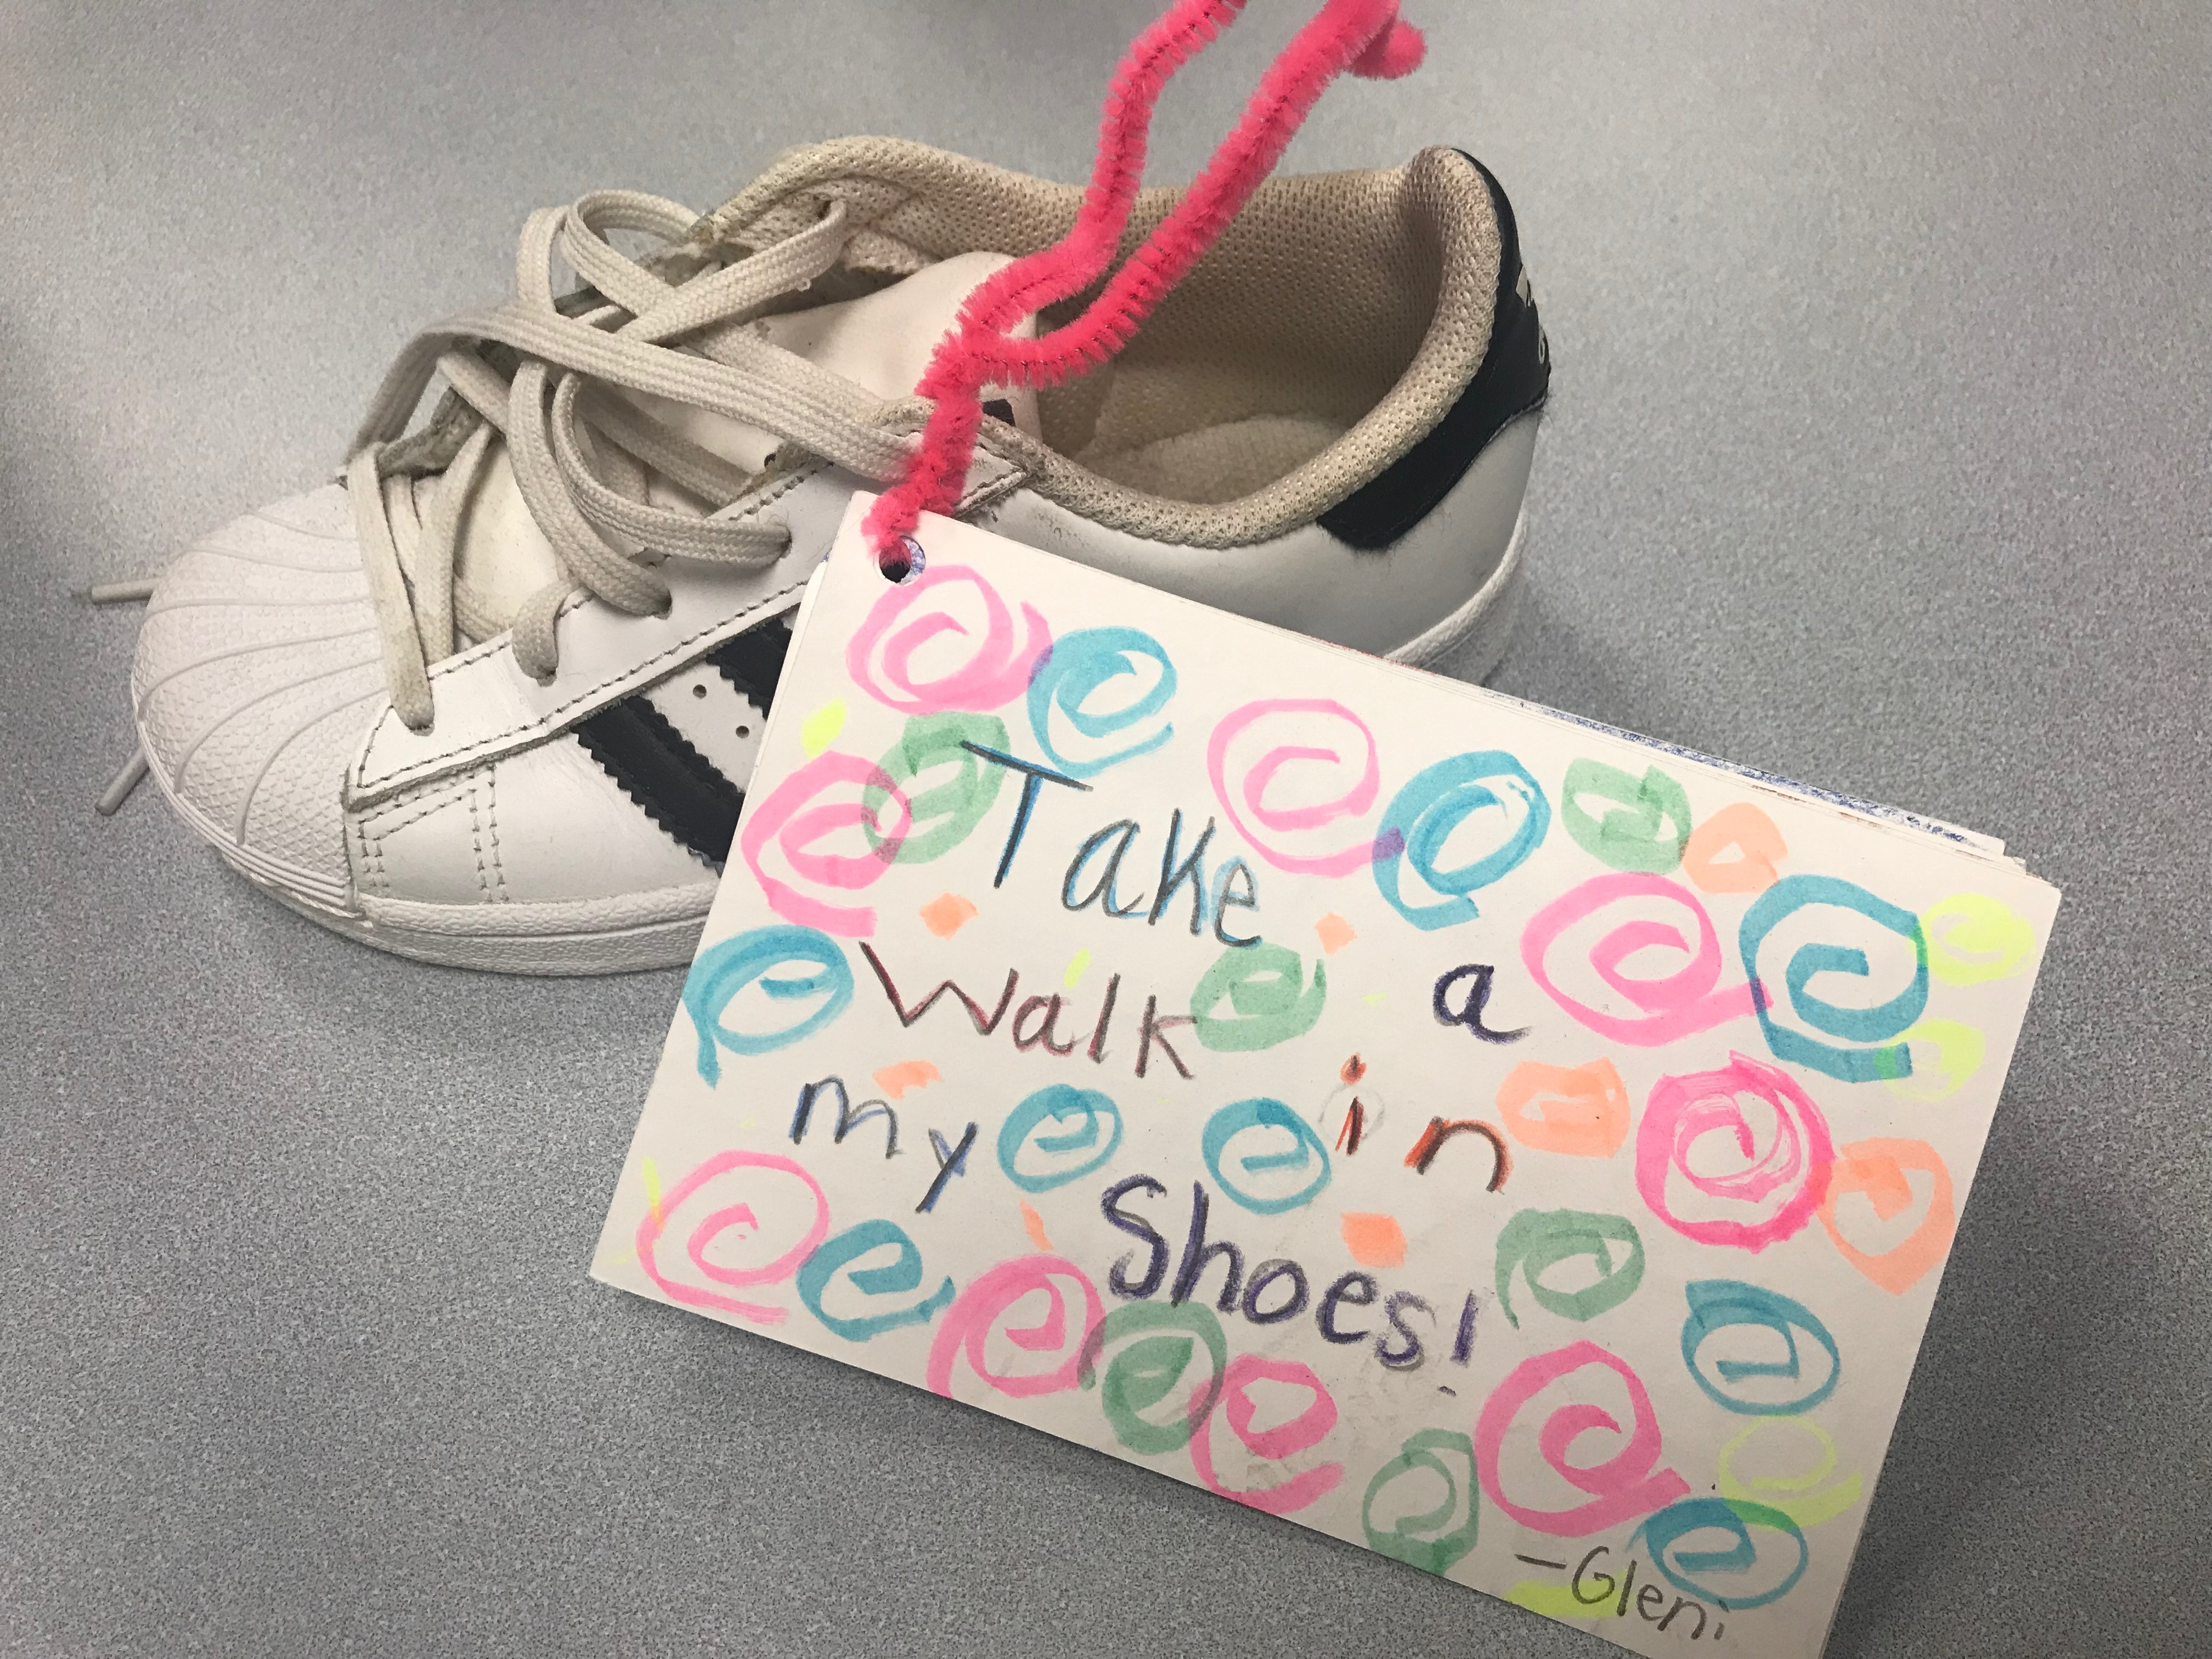 Creating Impact: Take A Walk in My Shoes